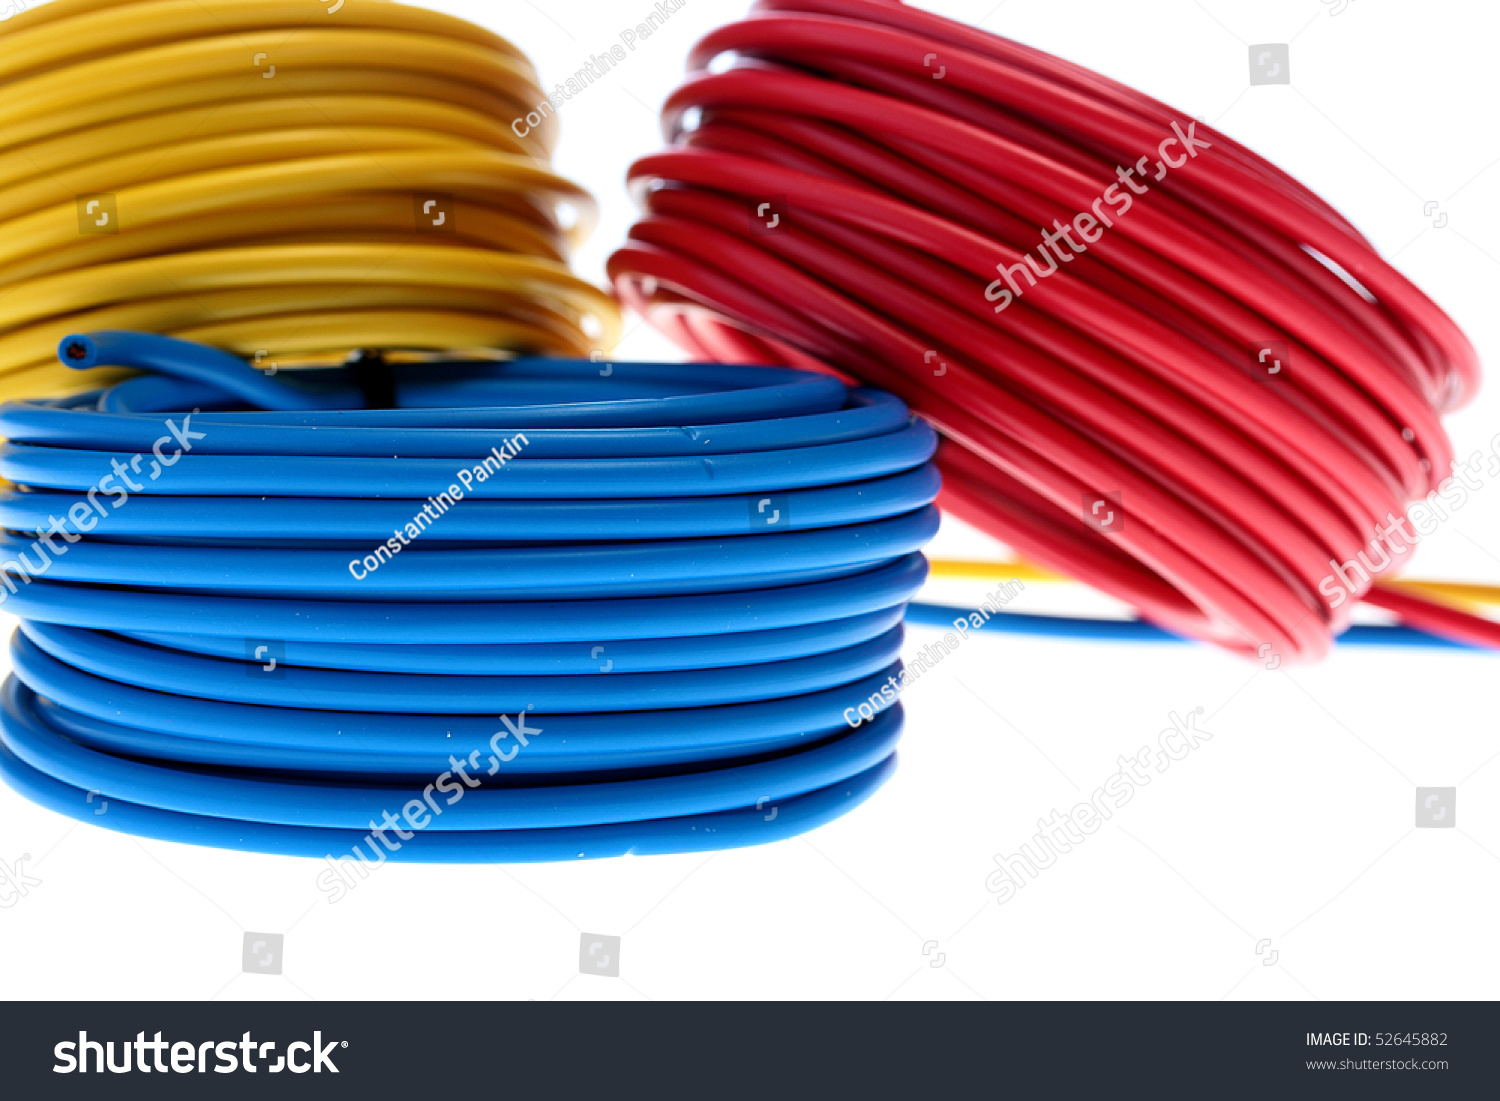 Colour For Electrical Wiring Electric Wires Red Yellow Dark Blue Stock Photo Edit Now 52645882 Of And Are Winded In Rings